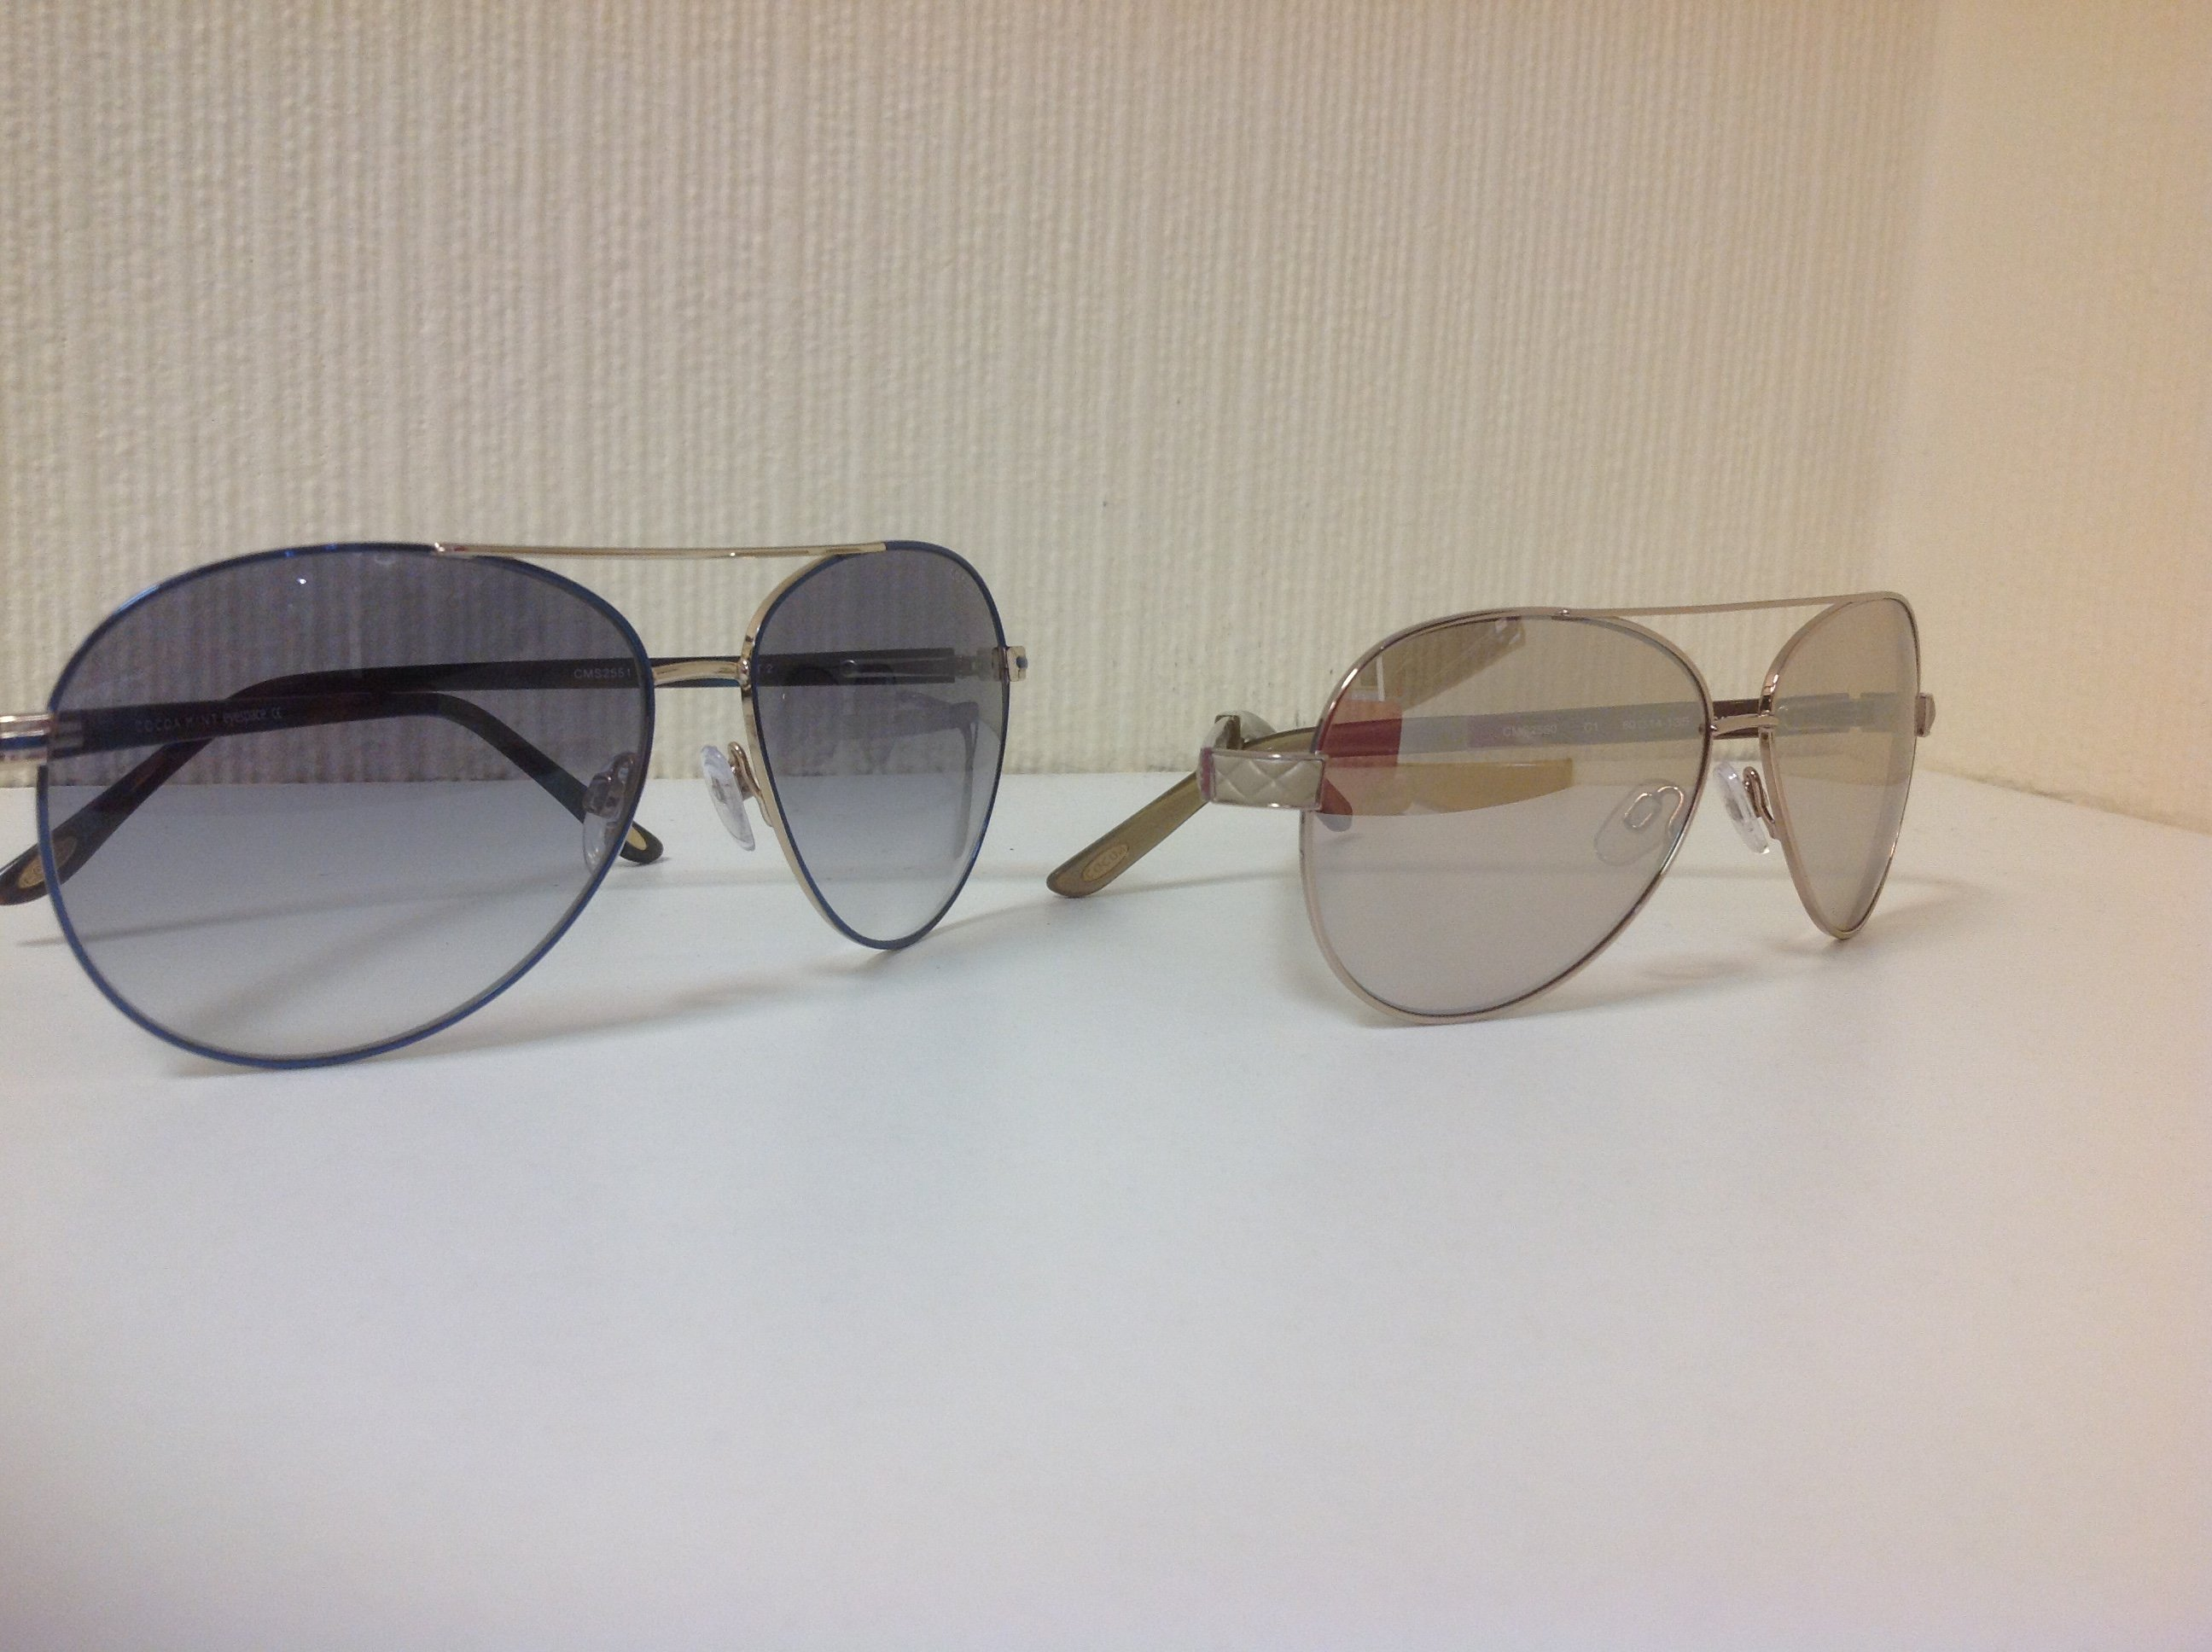 Sunglasses with grey and brown lenses